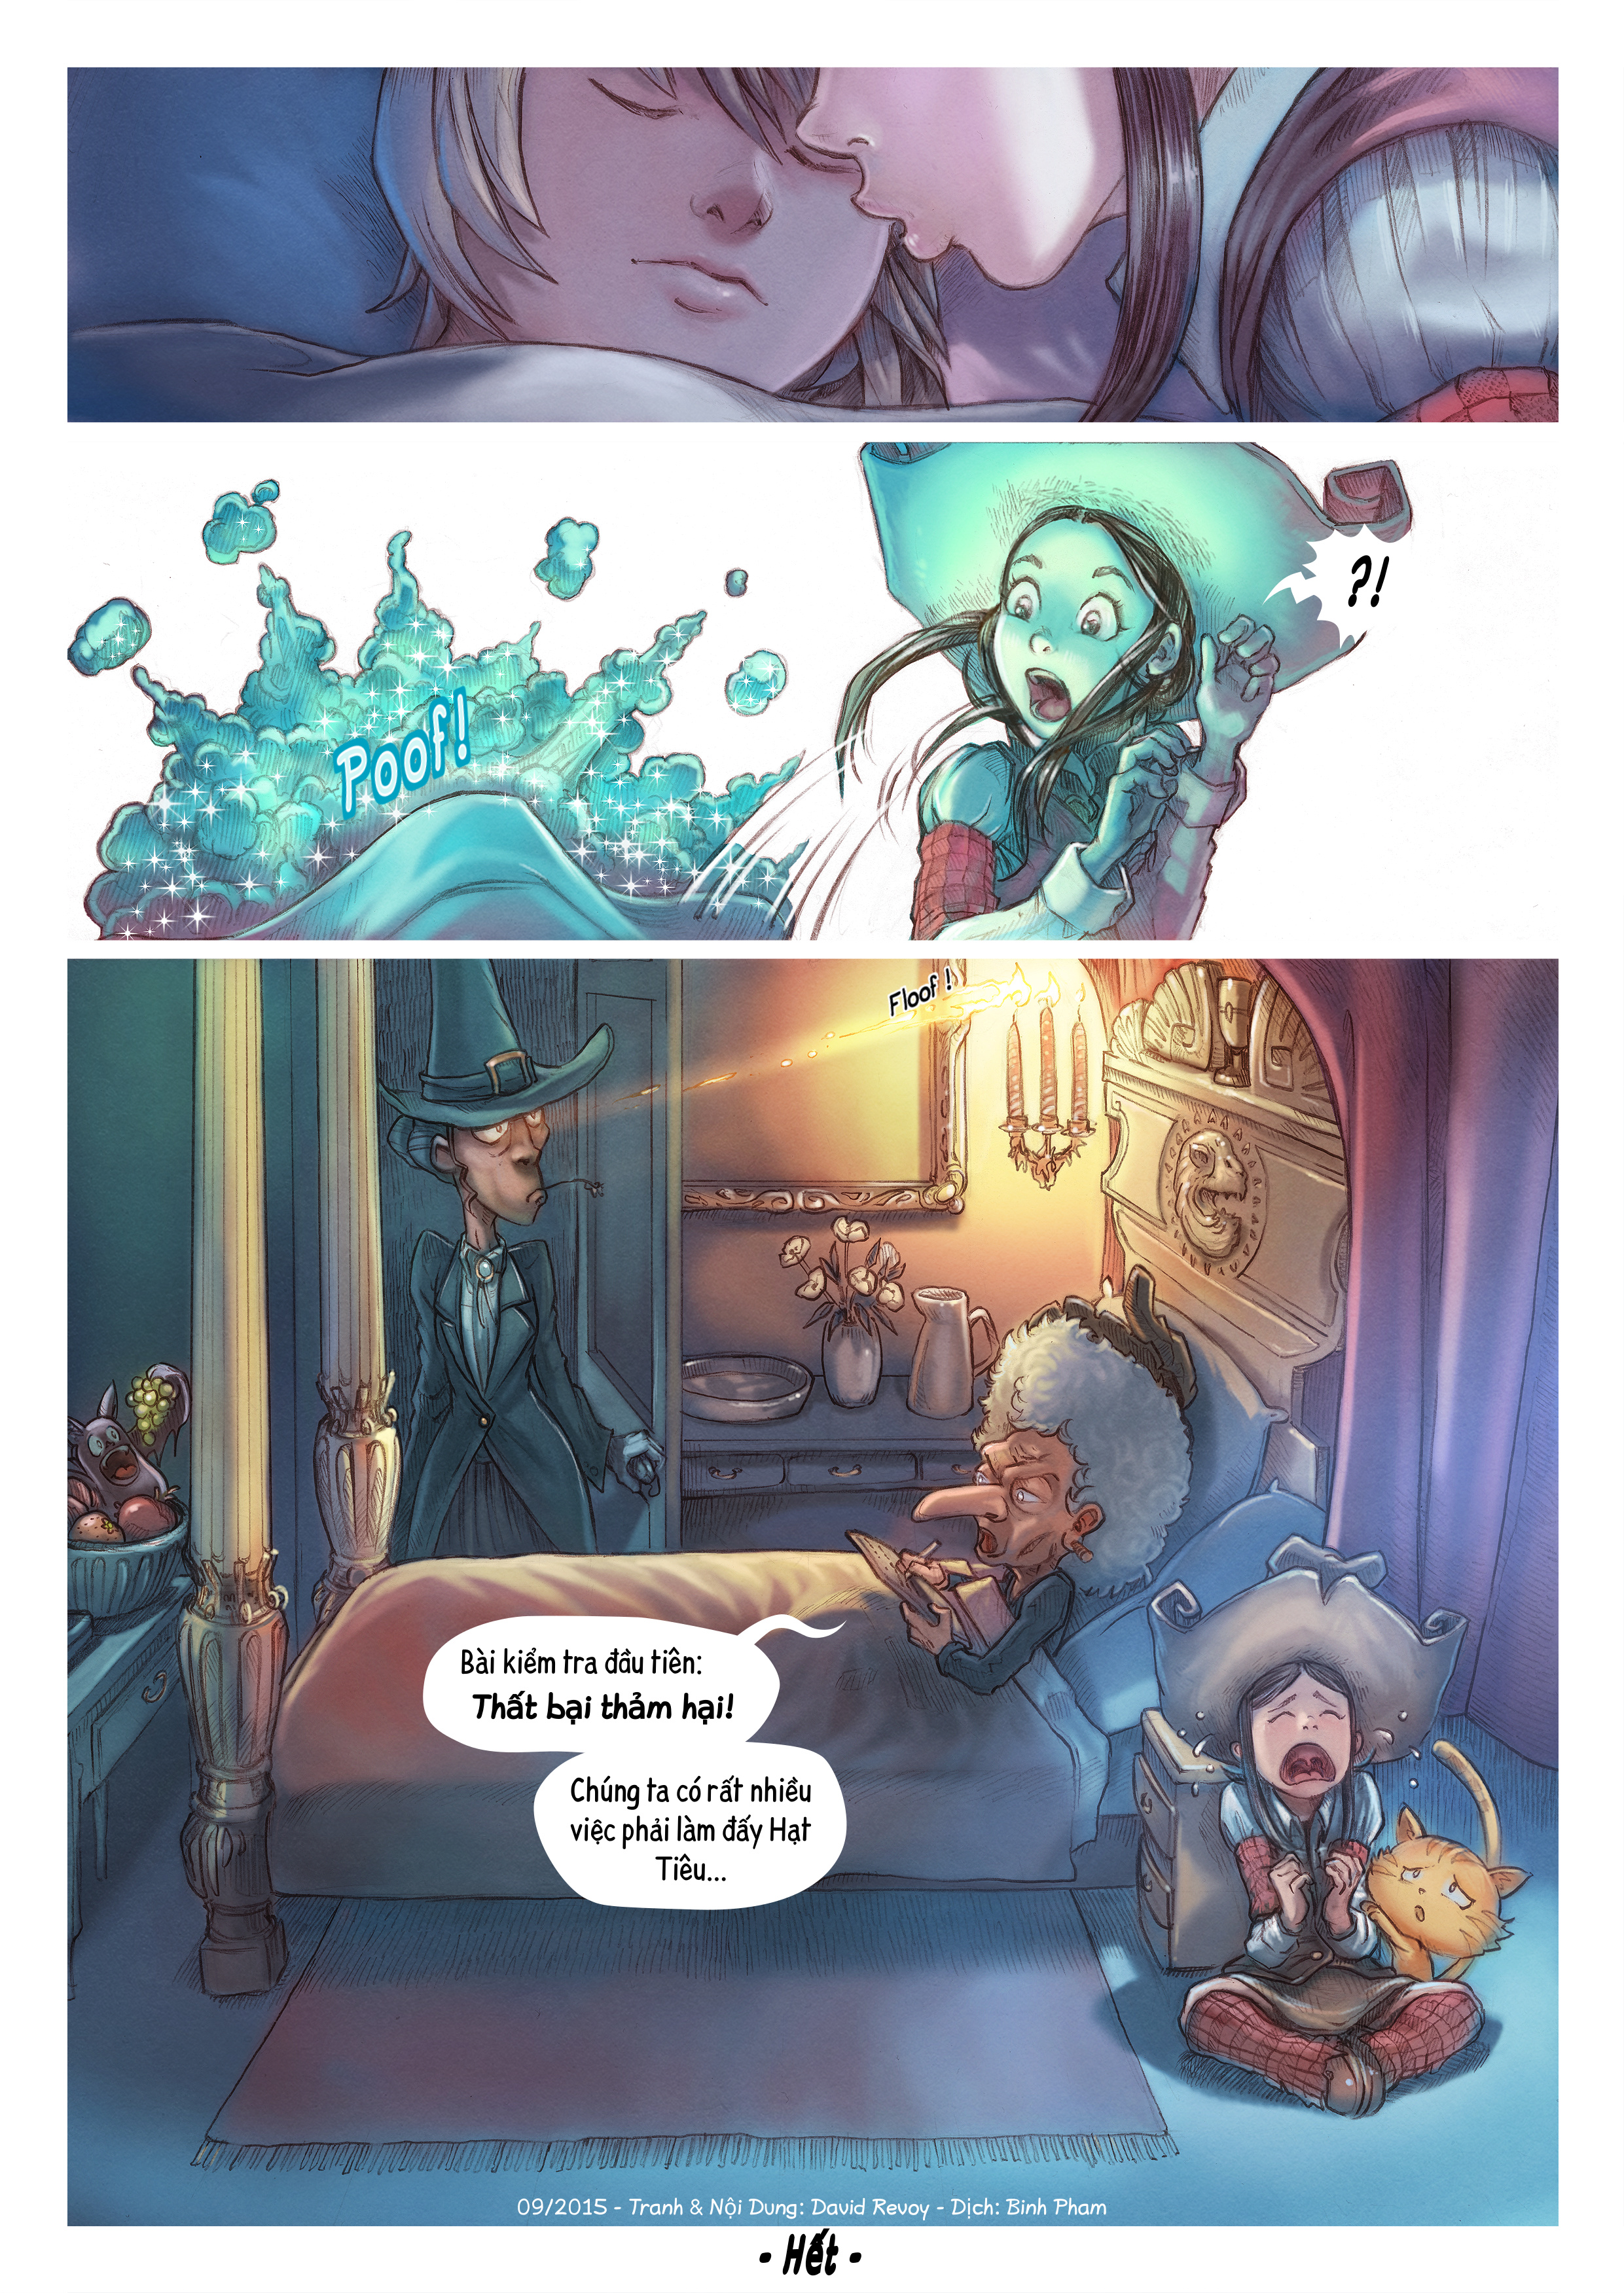 A webcomic page of Pepper&Carrot, Tập 11 [vi], trang 6